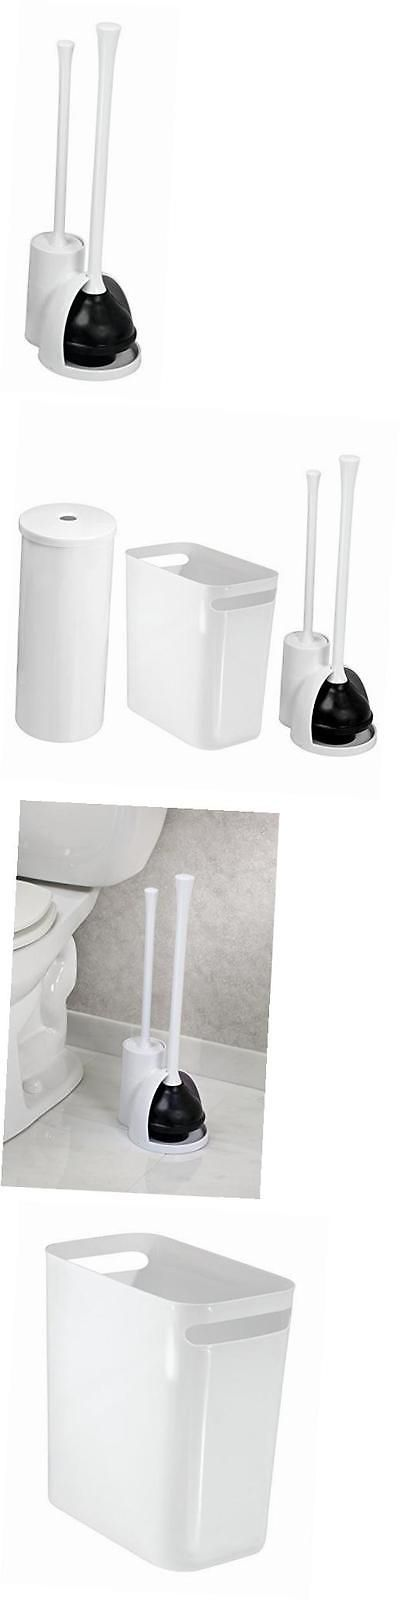 toilet brushes and sets mdesign bathroom plunger toilet bowl brush set toilet paper - Toilet Bowl Brush